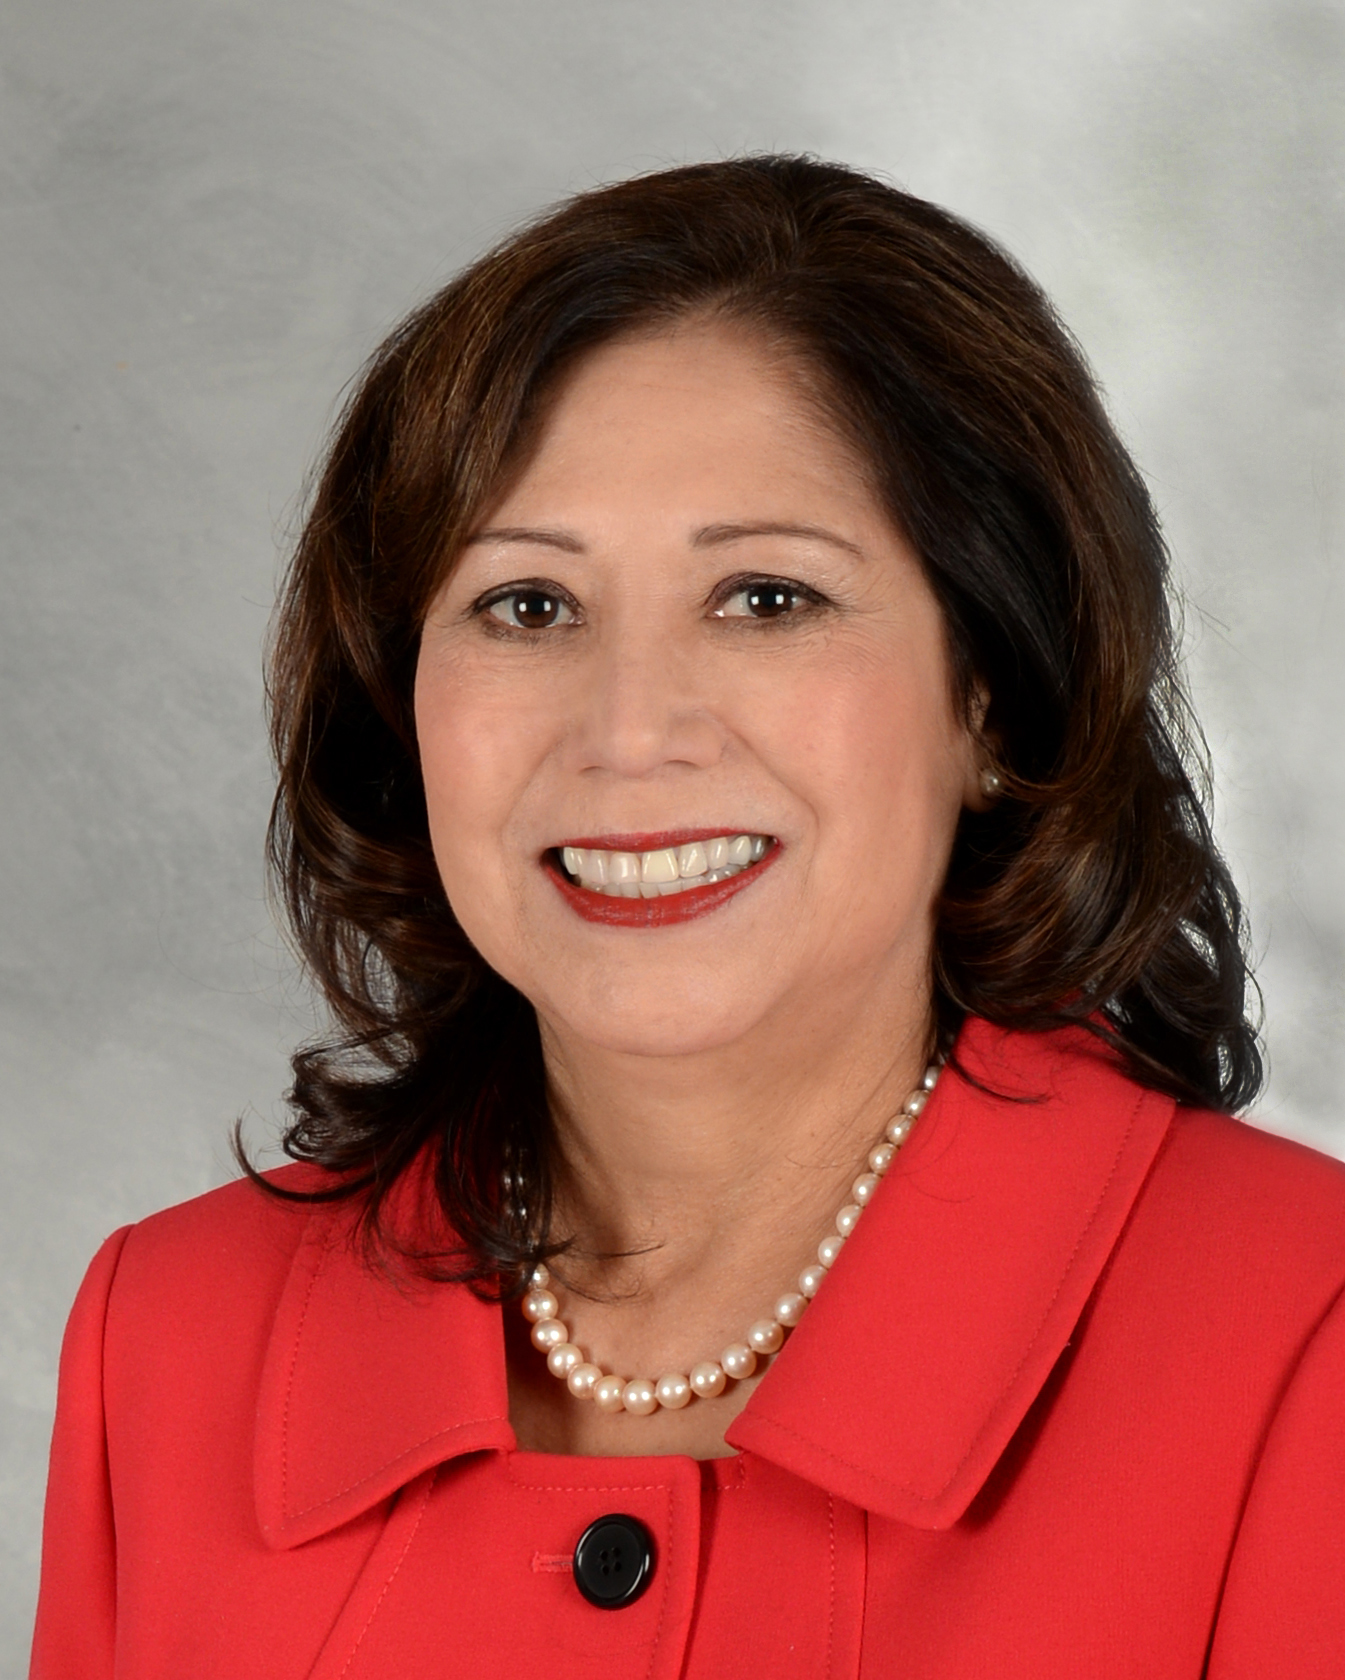 Hilda_Solis,_Los_Angeles_Count_Supervisor,_1st_District.jpg